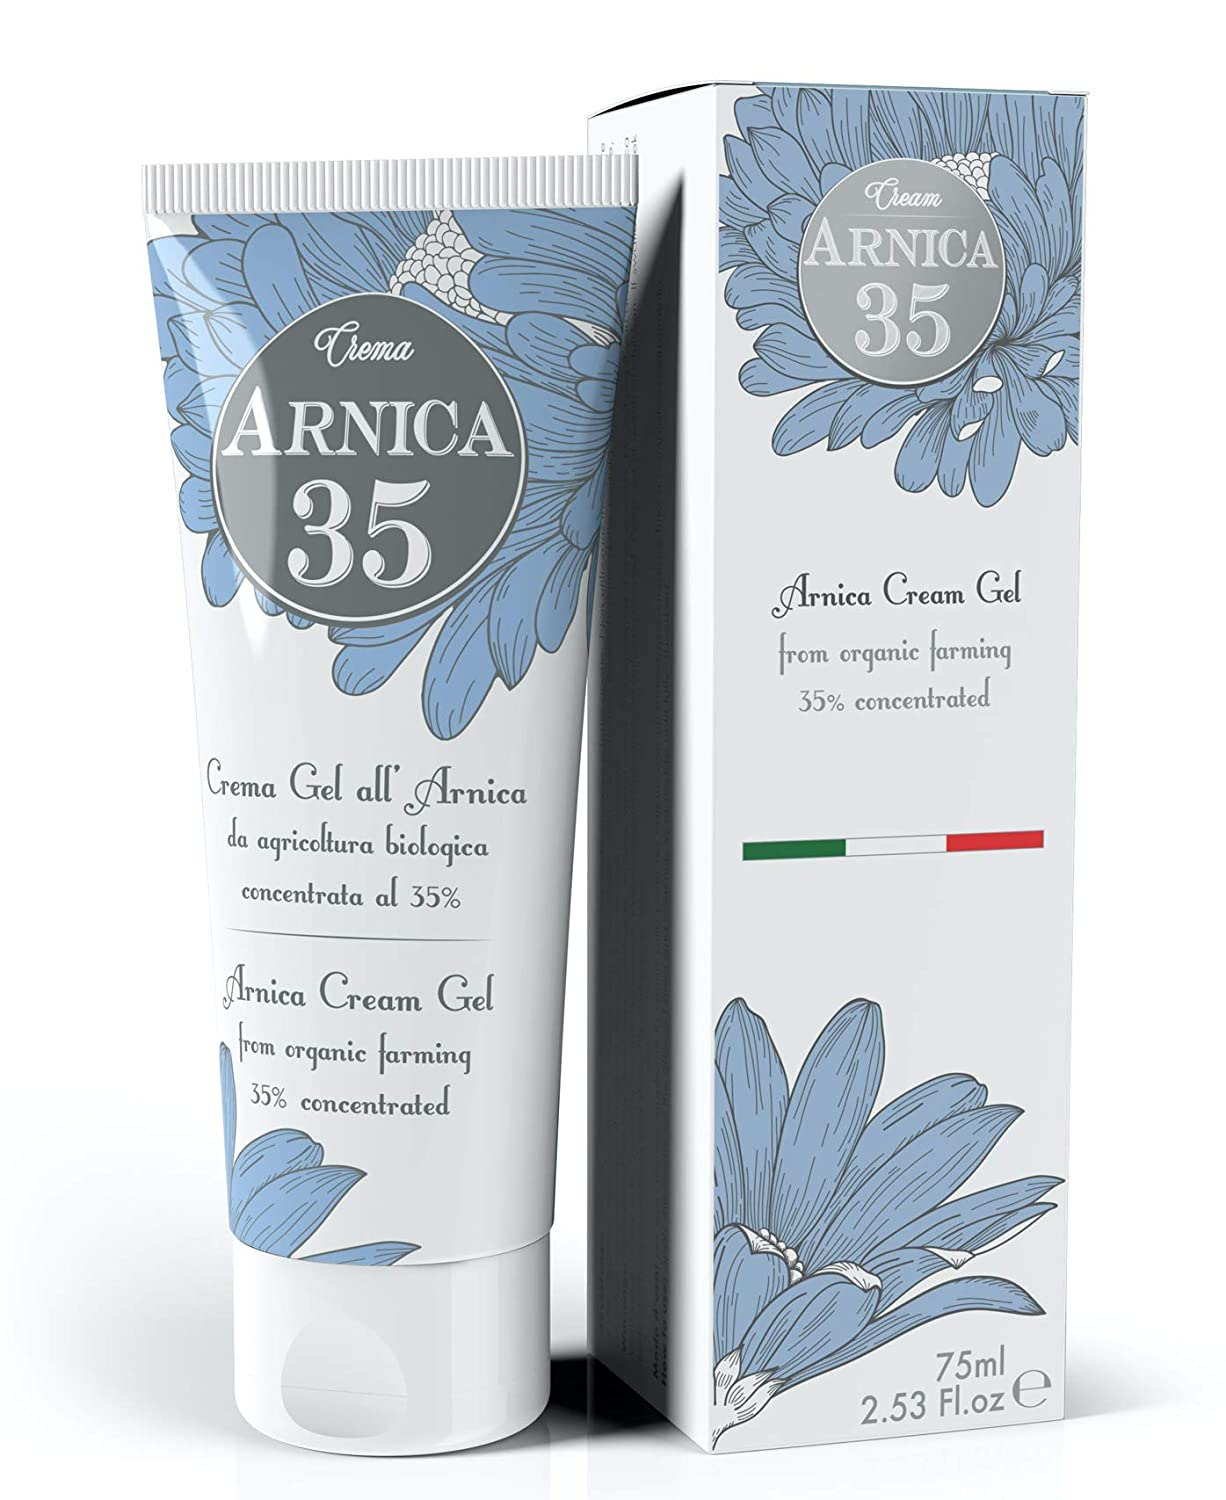 Dulàc - Arnica 35 - THE MOST CONCENTRATED - Arnica Gel Cream with a 35% concentration - Specific for Bruises, Neck Pain, Back Pain, Shoulder Pain, Leg and Foot Pain, Muscle Pain - 2.53 Fl.oz